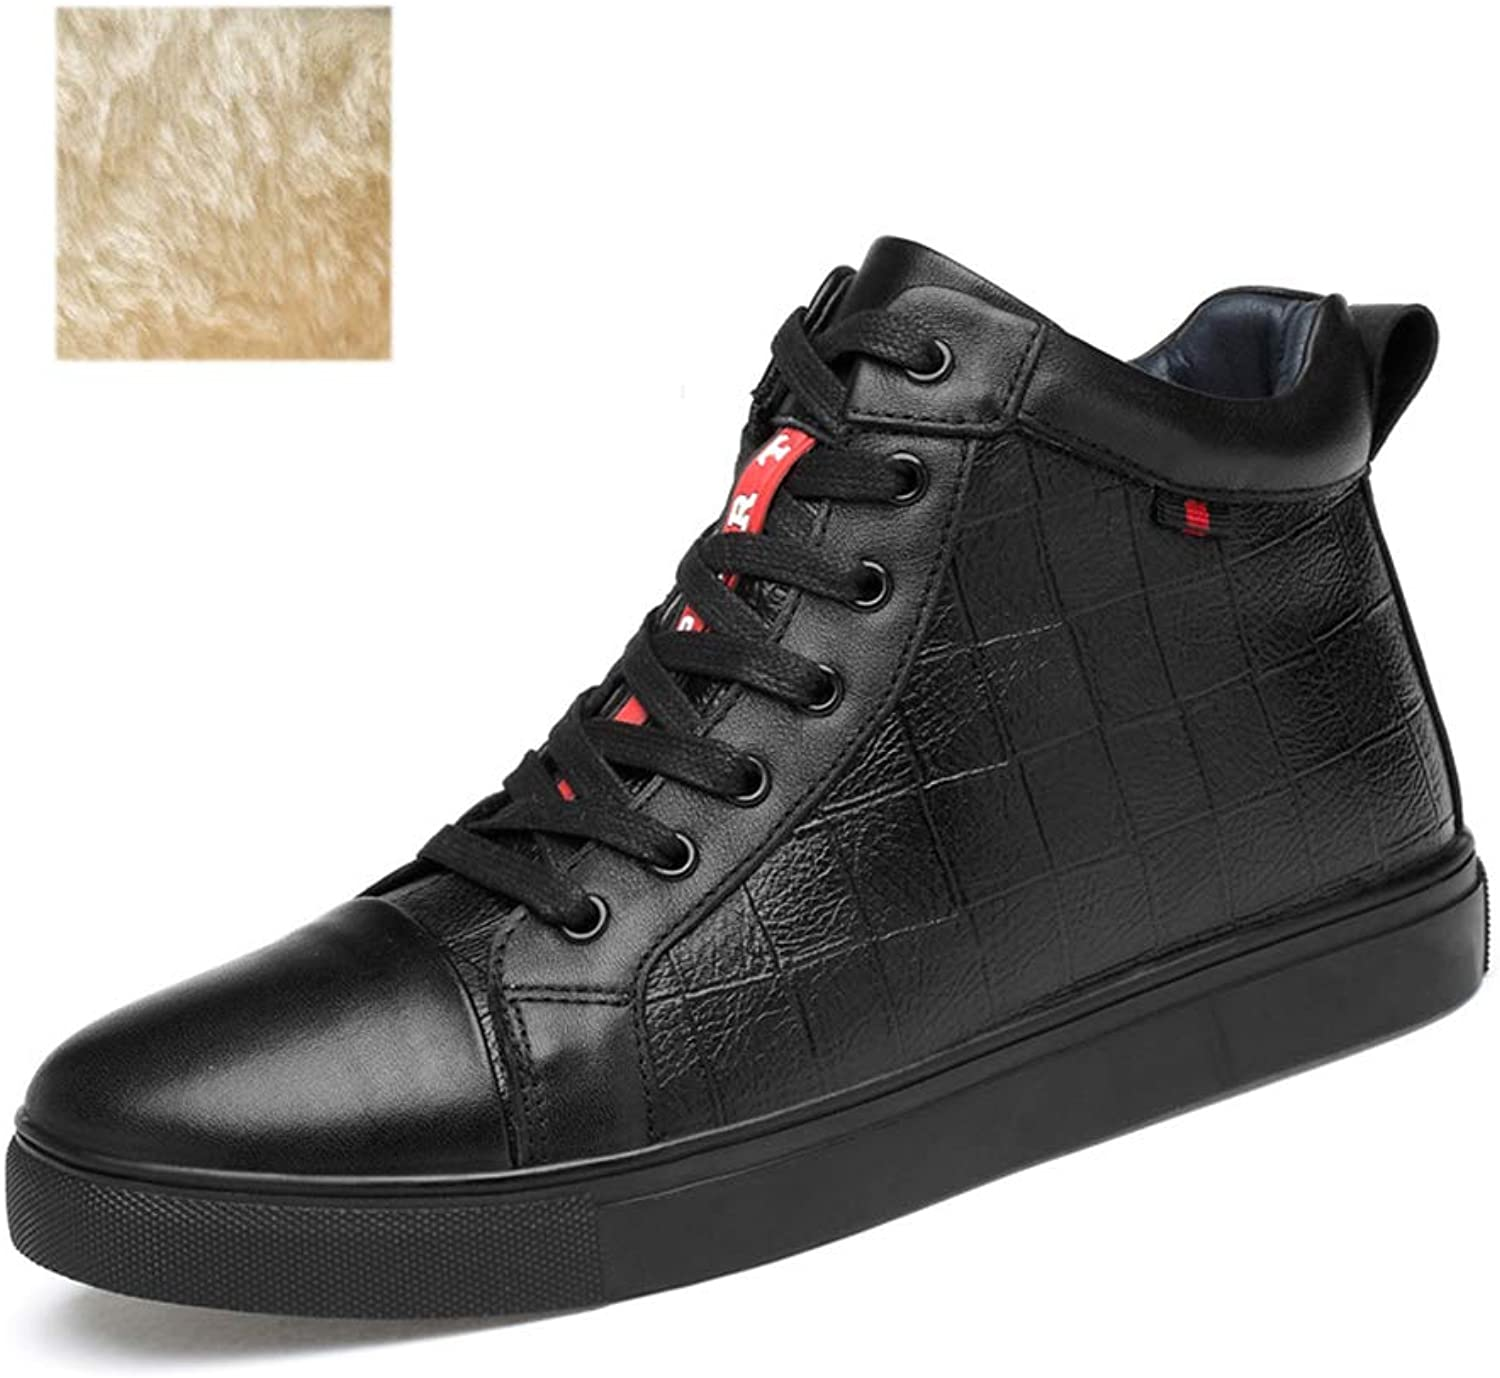 Men's shoes Fall Winter New Leather Sneakers High-top Casual Deck shoes Lace-up Driving shoes Flat shoes (color   Black, Size   43)